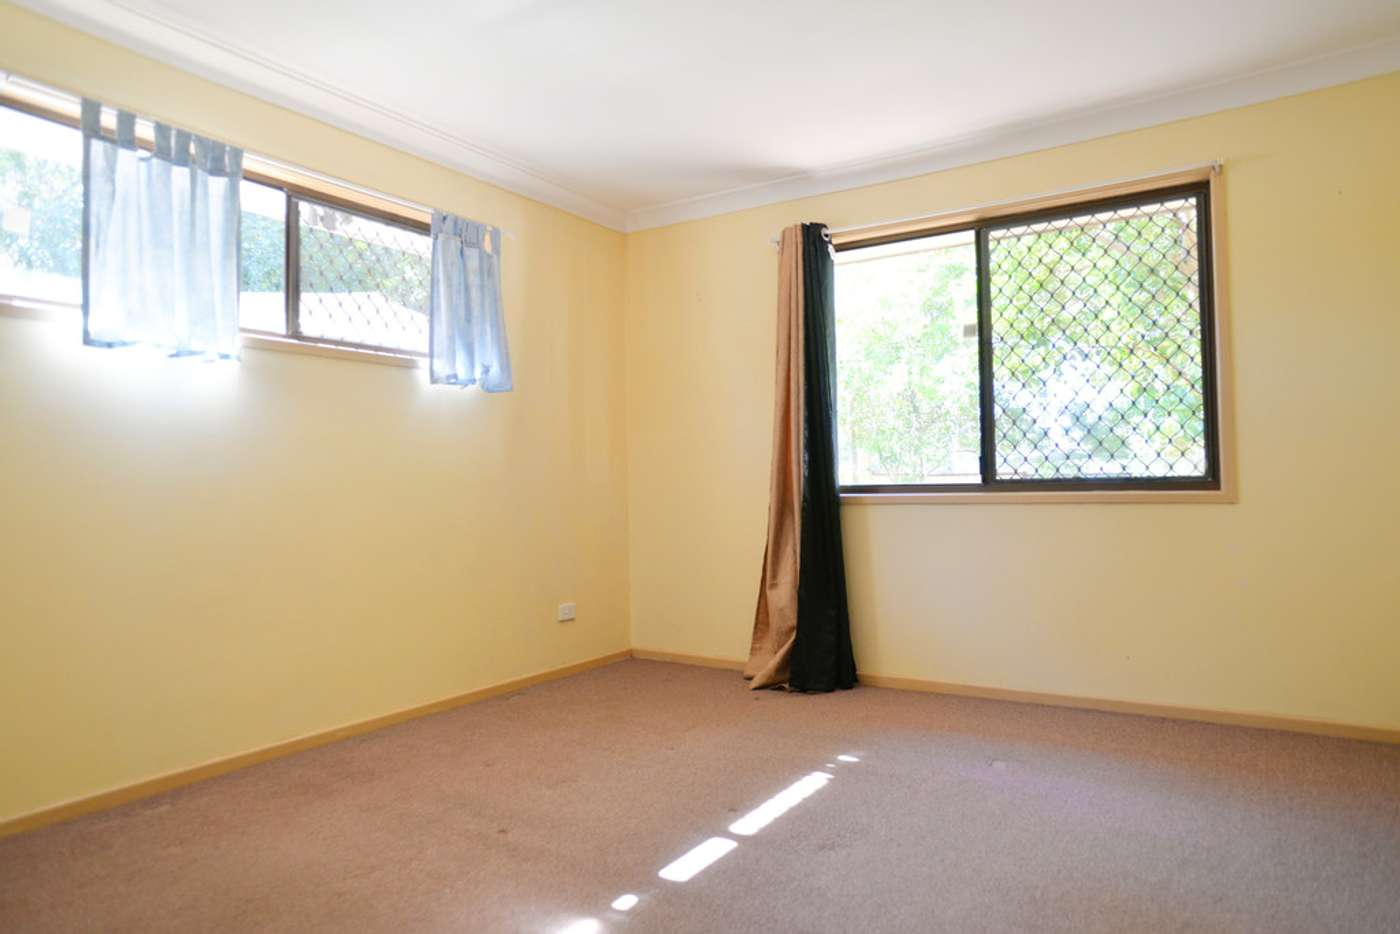 Sixth view of Homely house listing, 58 Trulson Drive, Crestmead QLD 4132